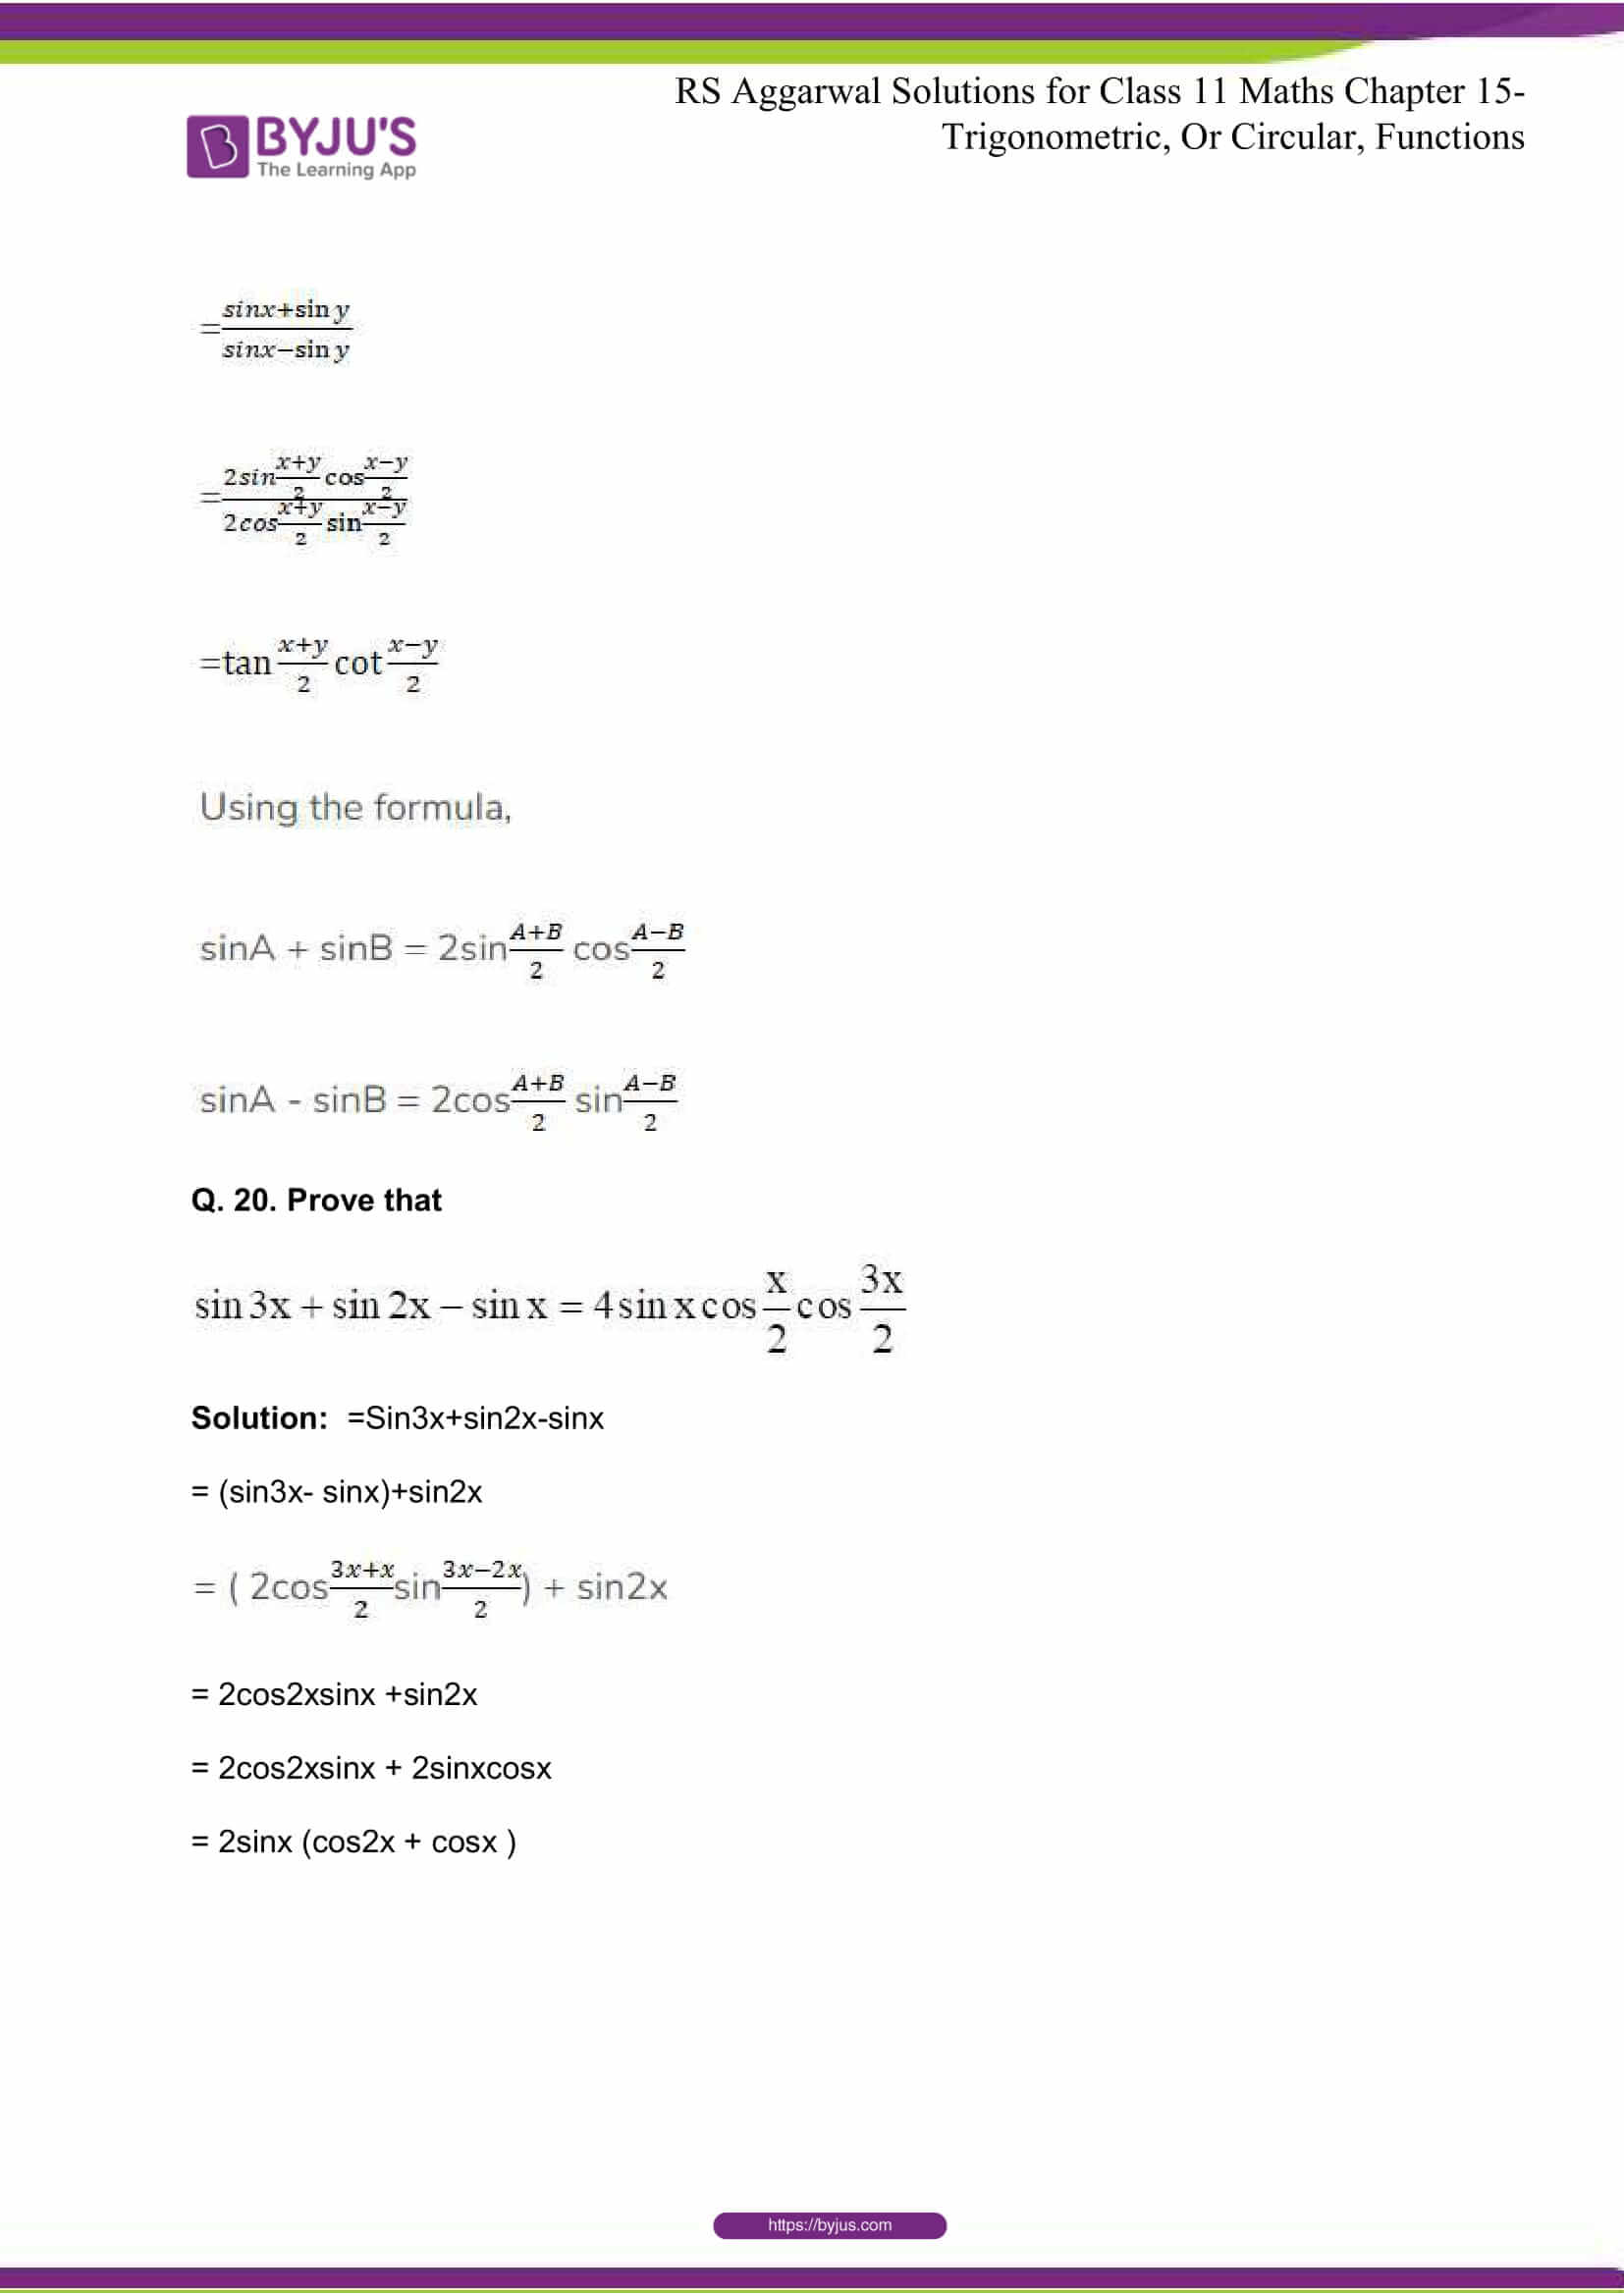 rsaggarwal solutions class 11 maths chapter 15 067